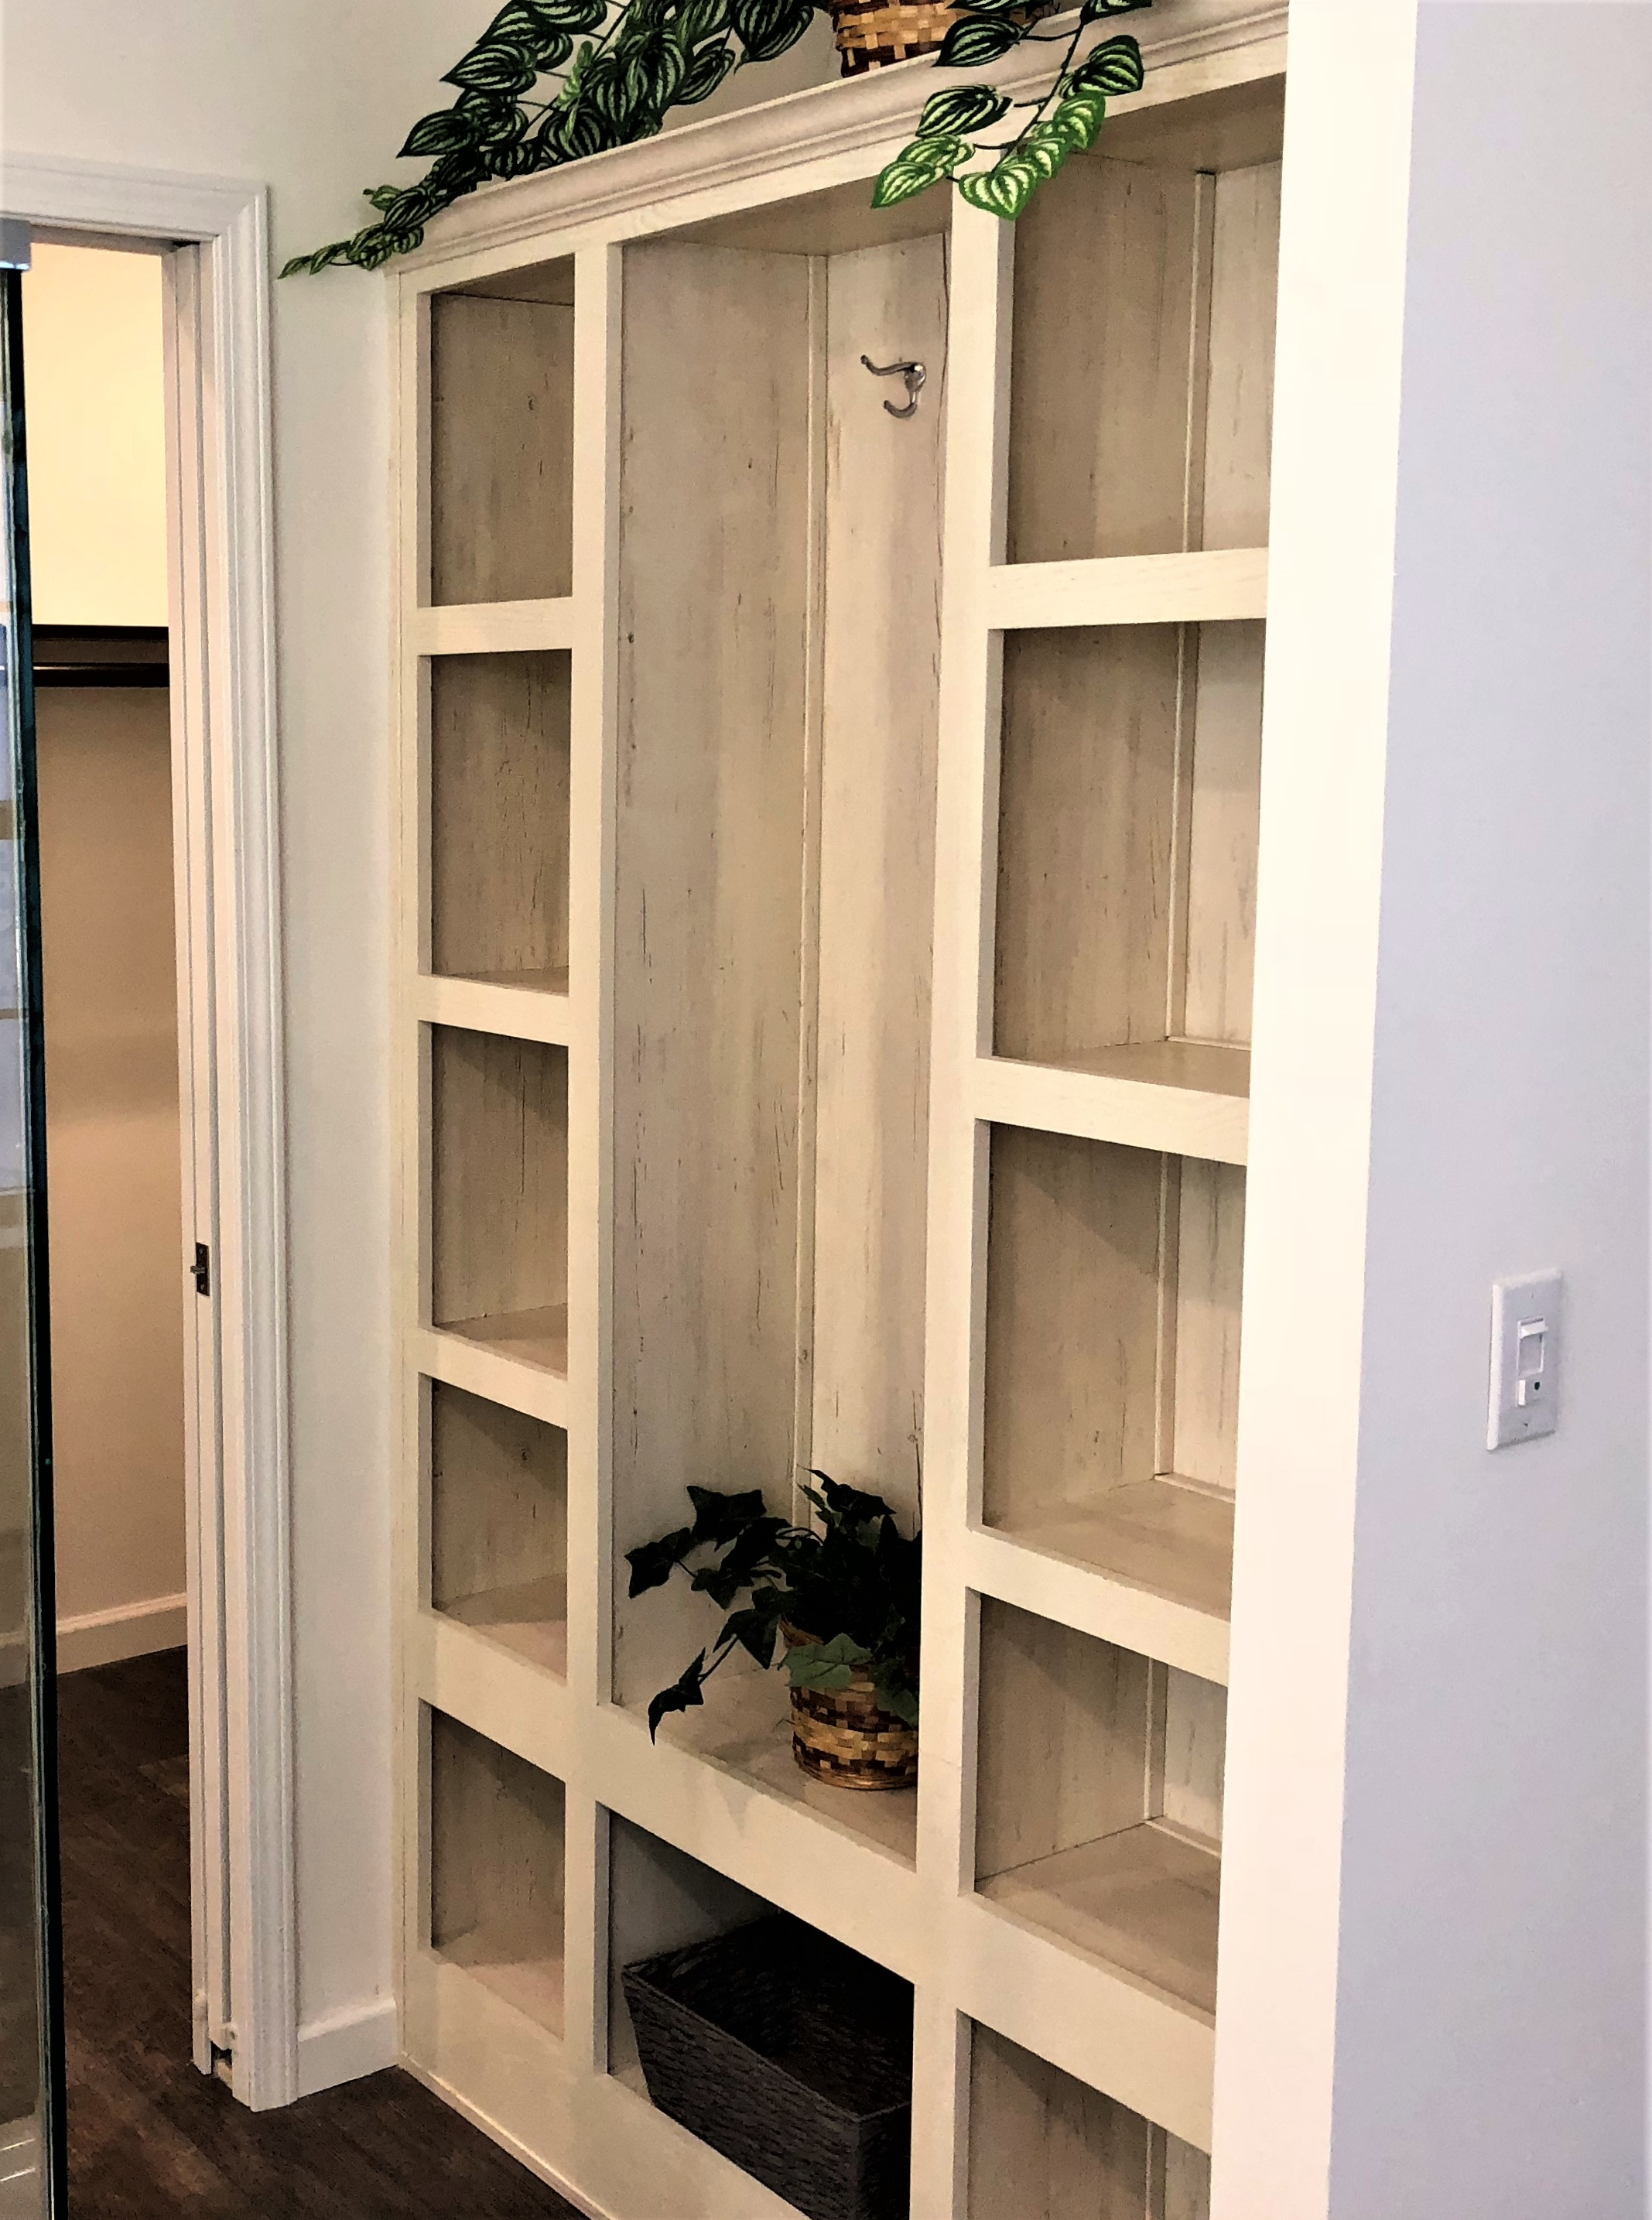 Built-in Wall Shelf in Master Bath